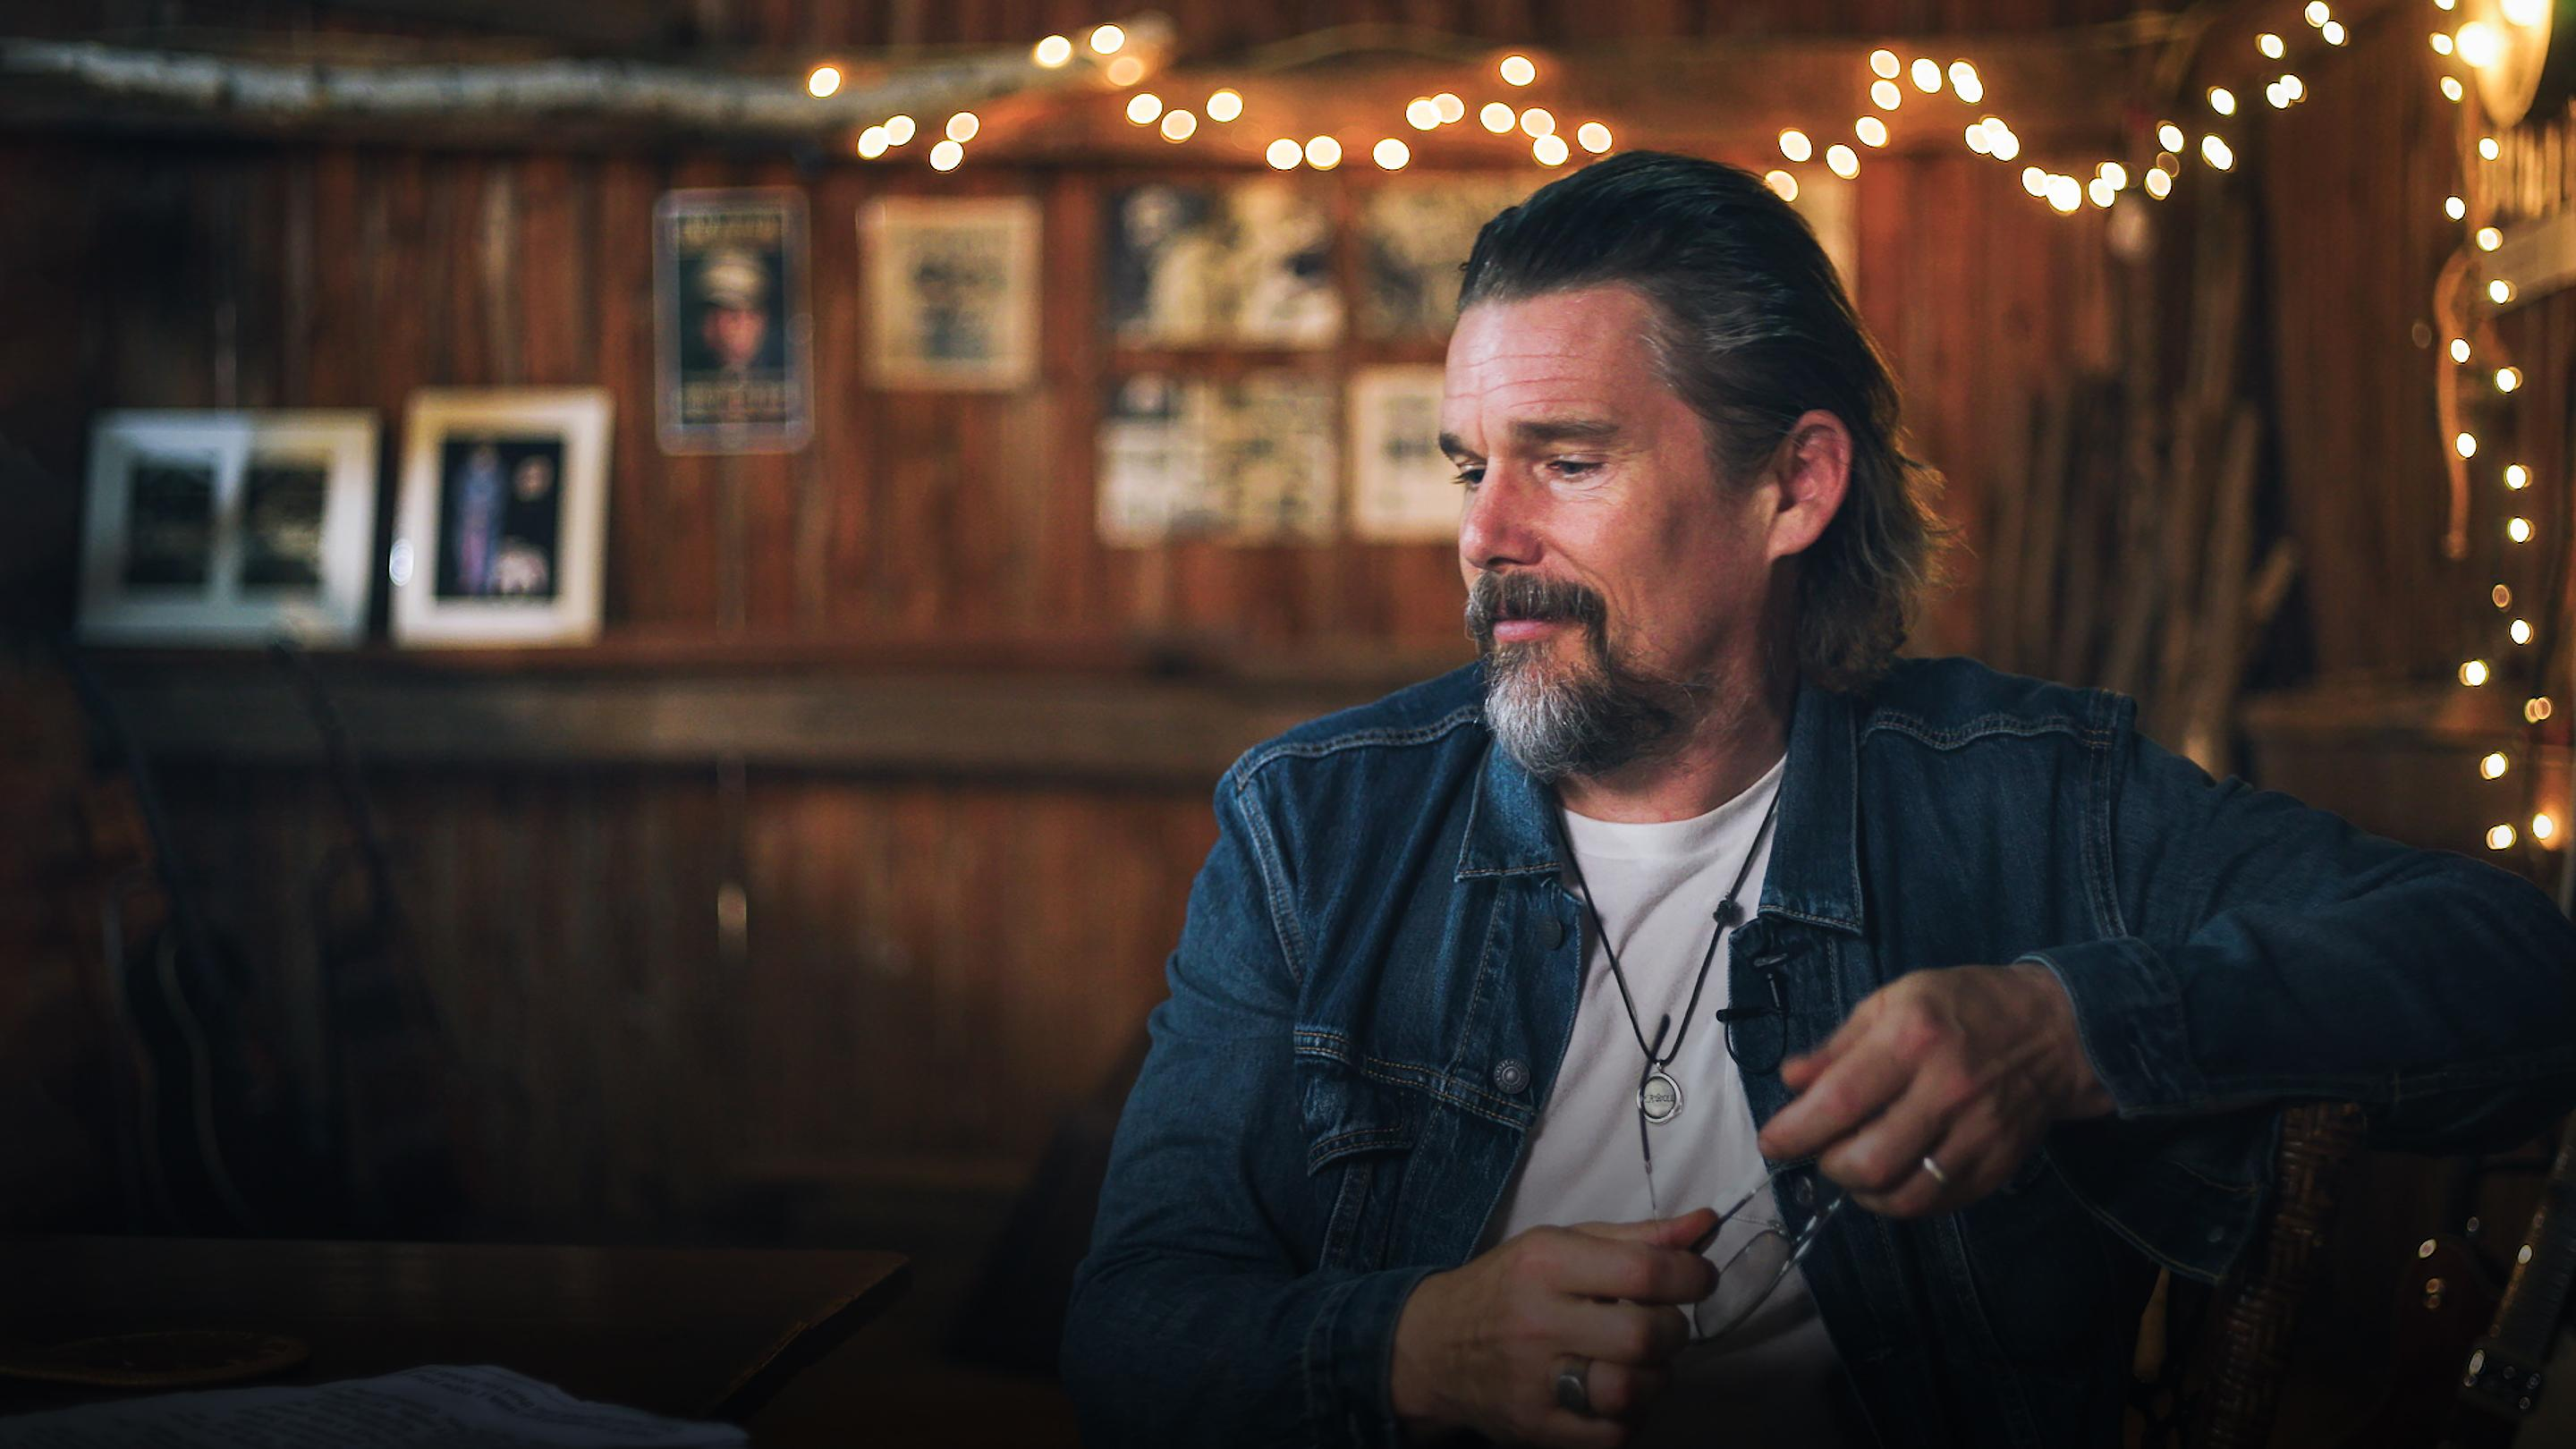 Give yourself permission to be creative | Ethan Hawke